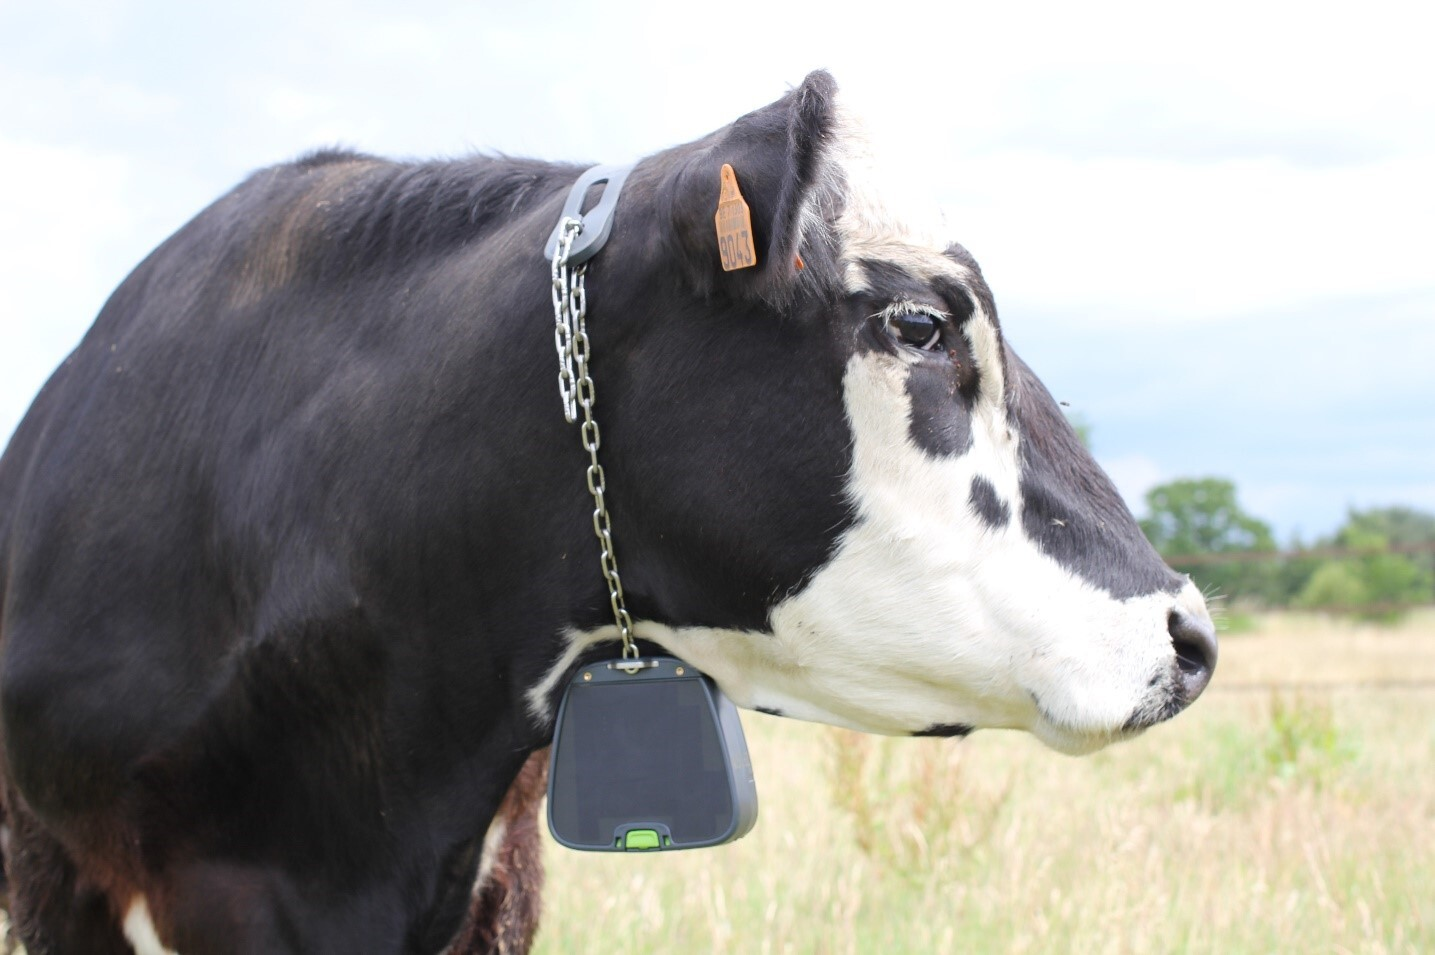 Figure 4 - The virtual fencing collar for cattle (by Nofence) mounted on a Black Baldy cow. The solar panels at the side of the collar are clearly visible